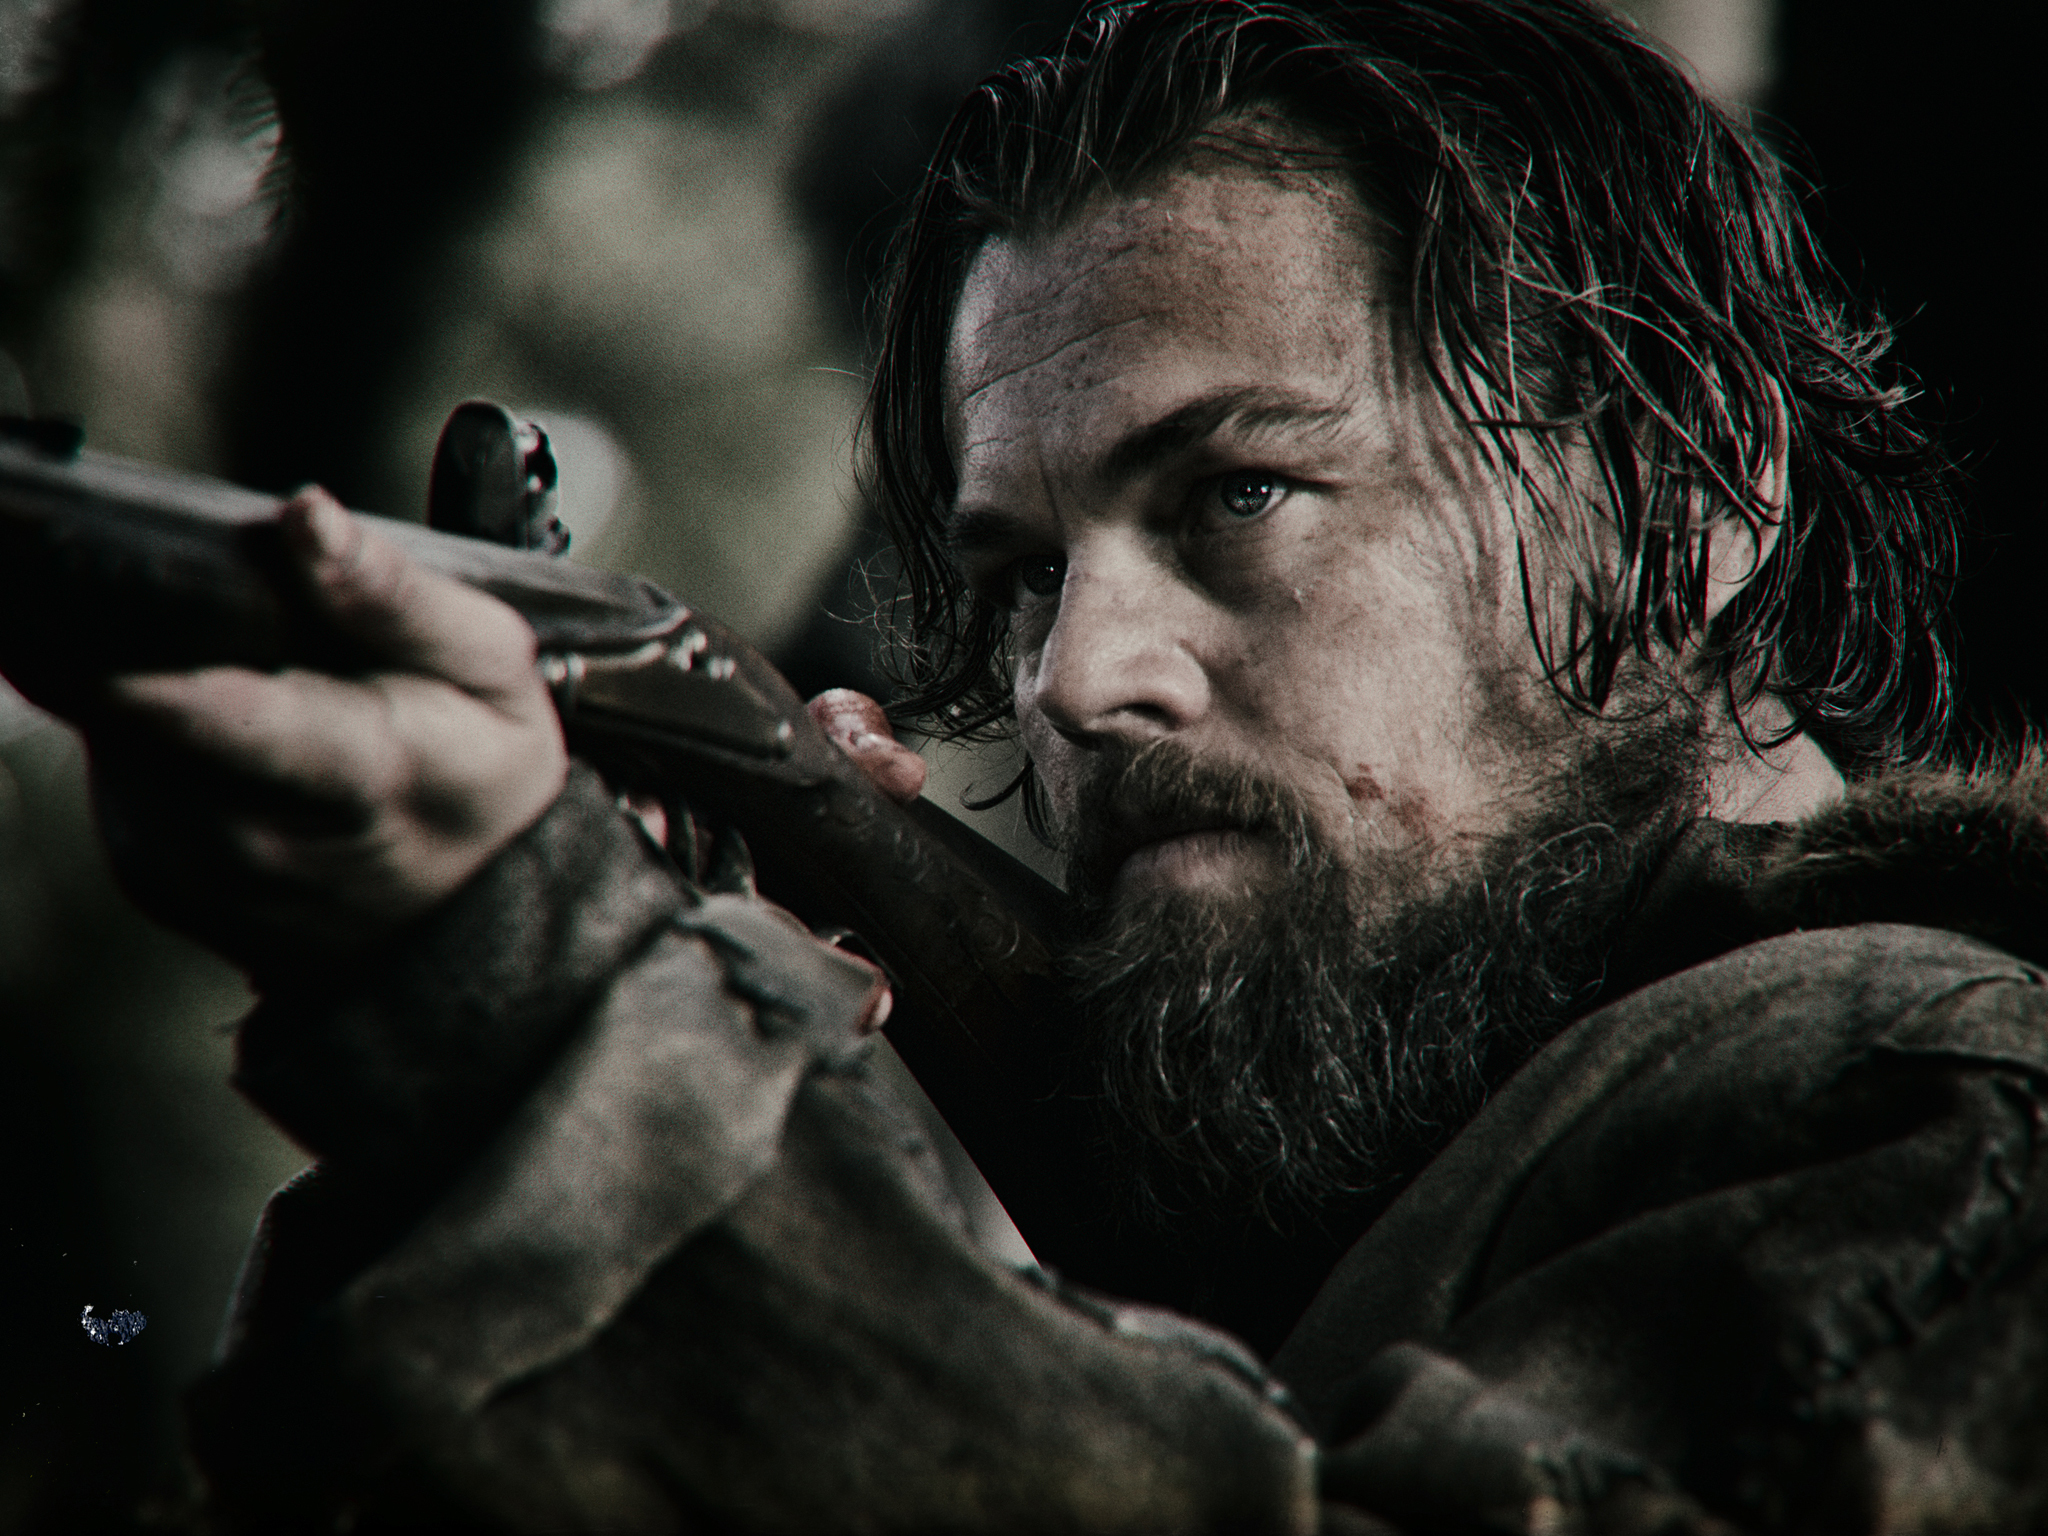 oscars 2016 predictions, the revenant